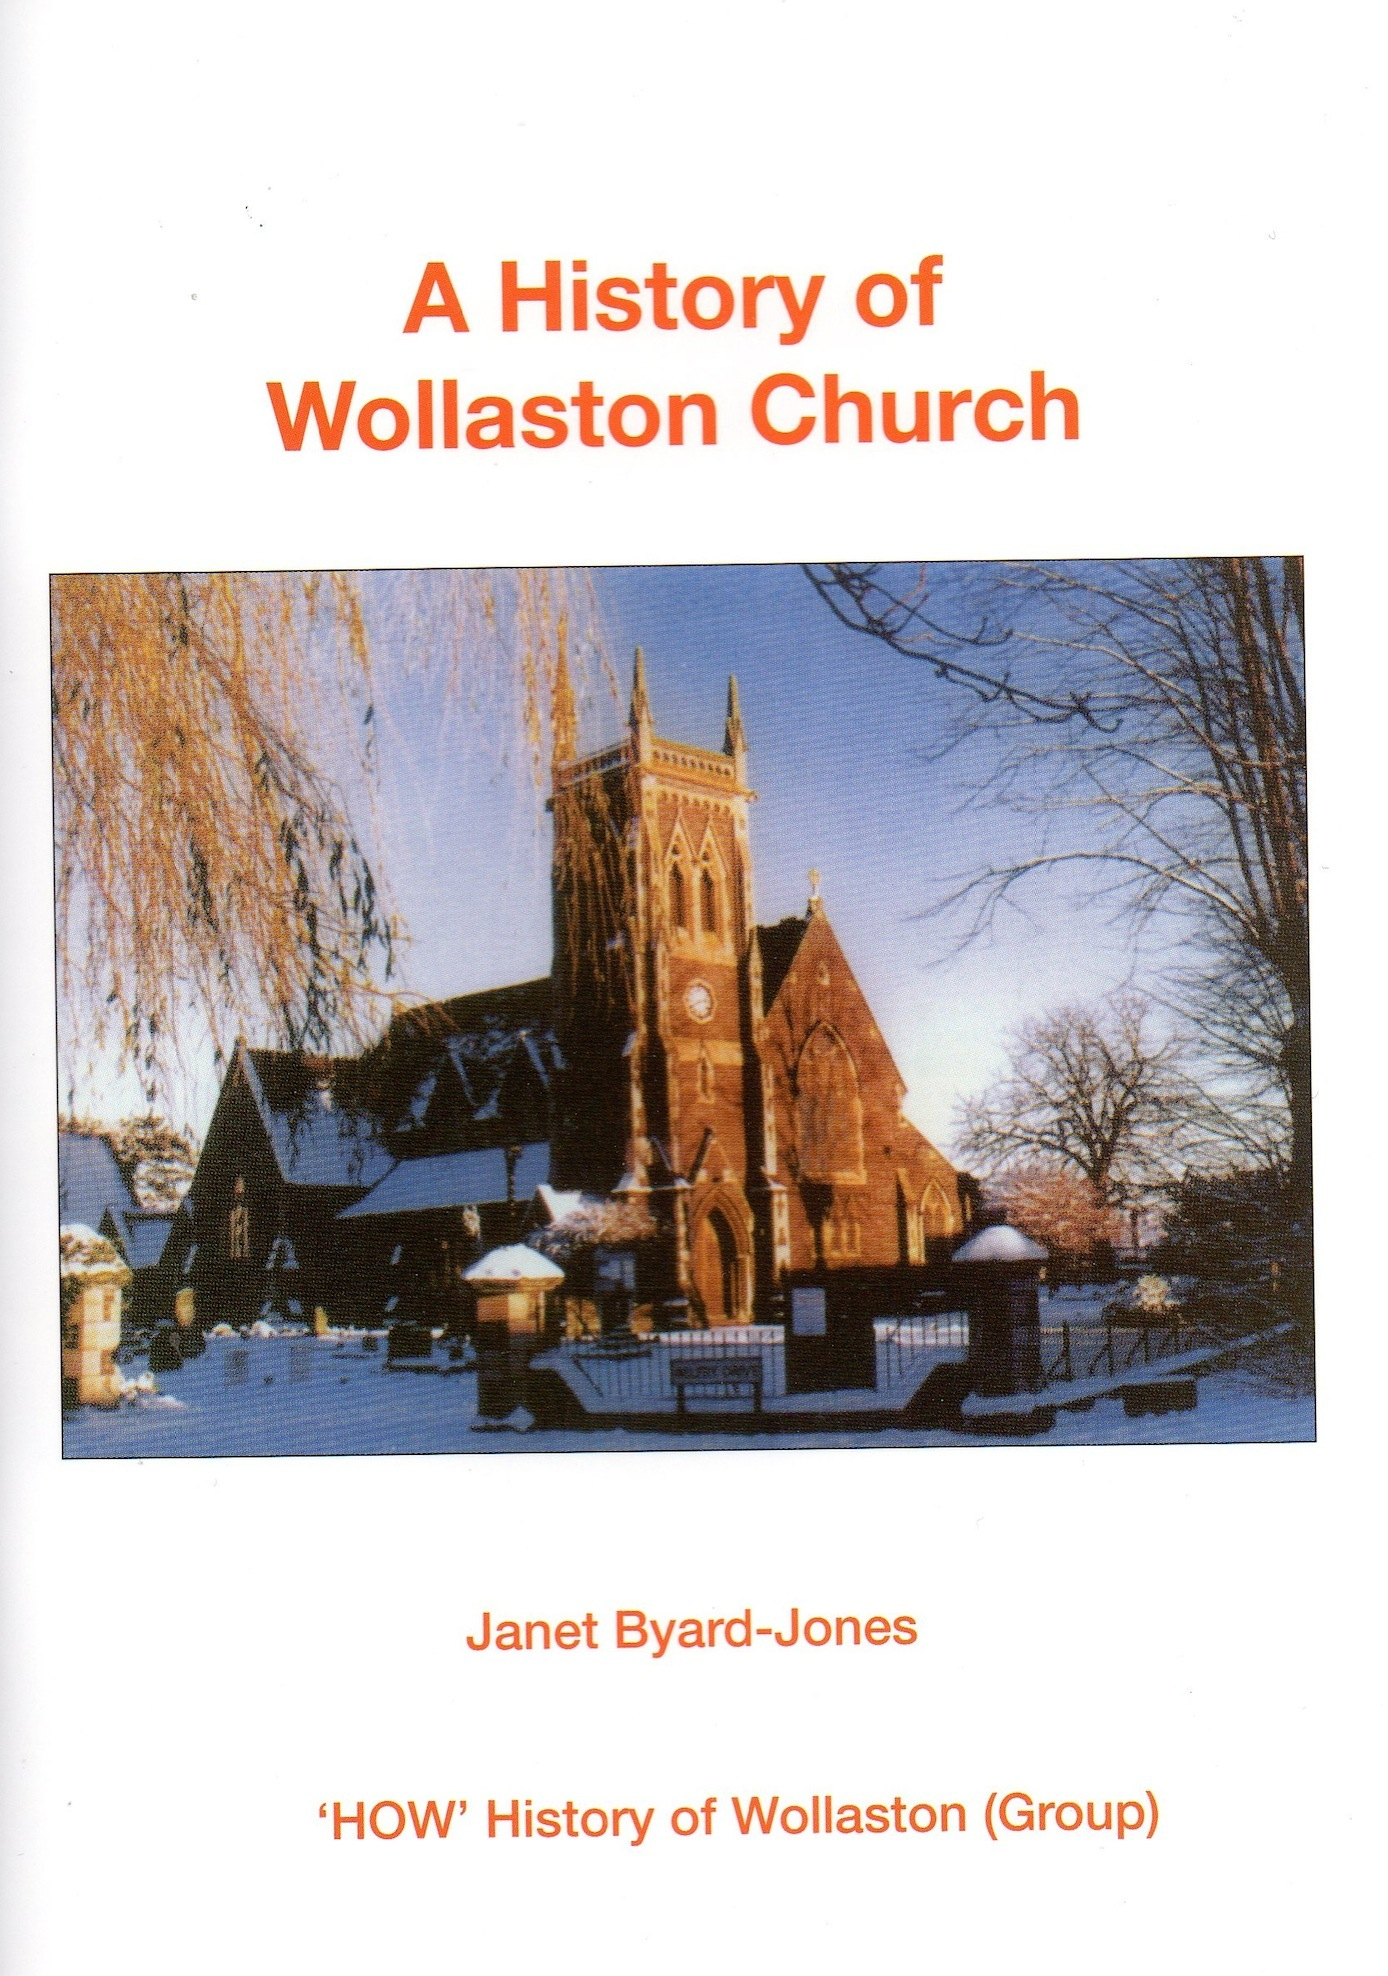 <p>A History of Wollaston Church published 2010.</p>